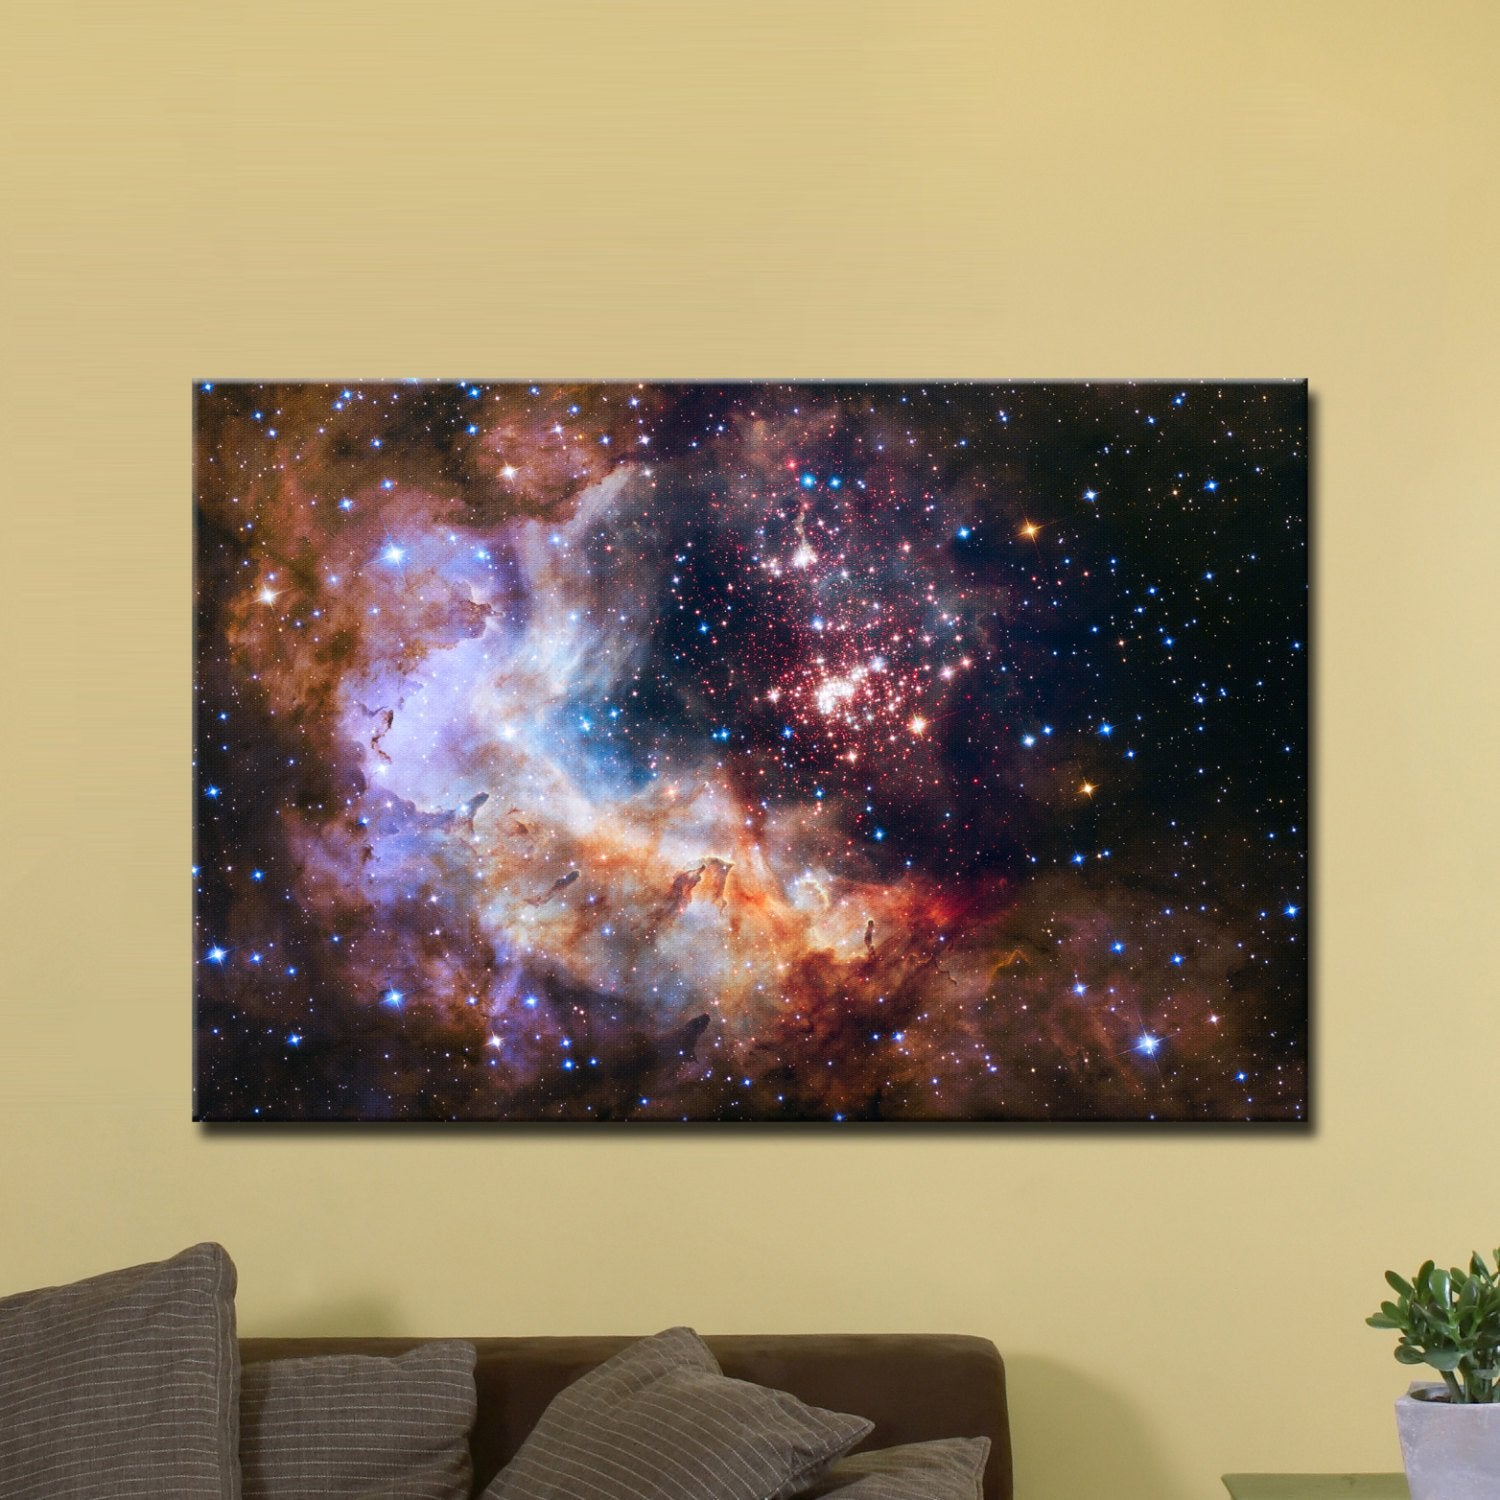 "Celestial Fireworks, Hubble 25th Anniversary HD Space Photo (24"" x 36"") - Canvas Wrap Print"